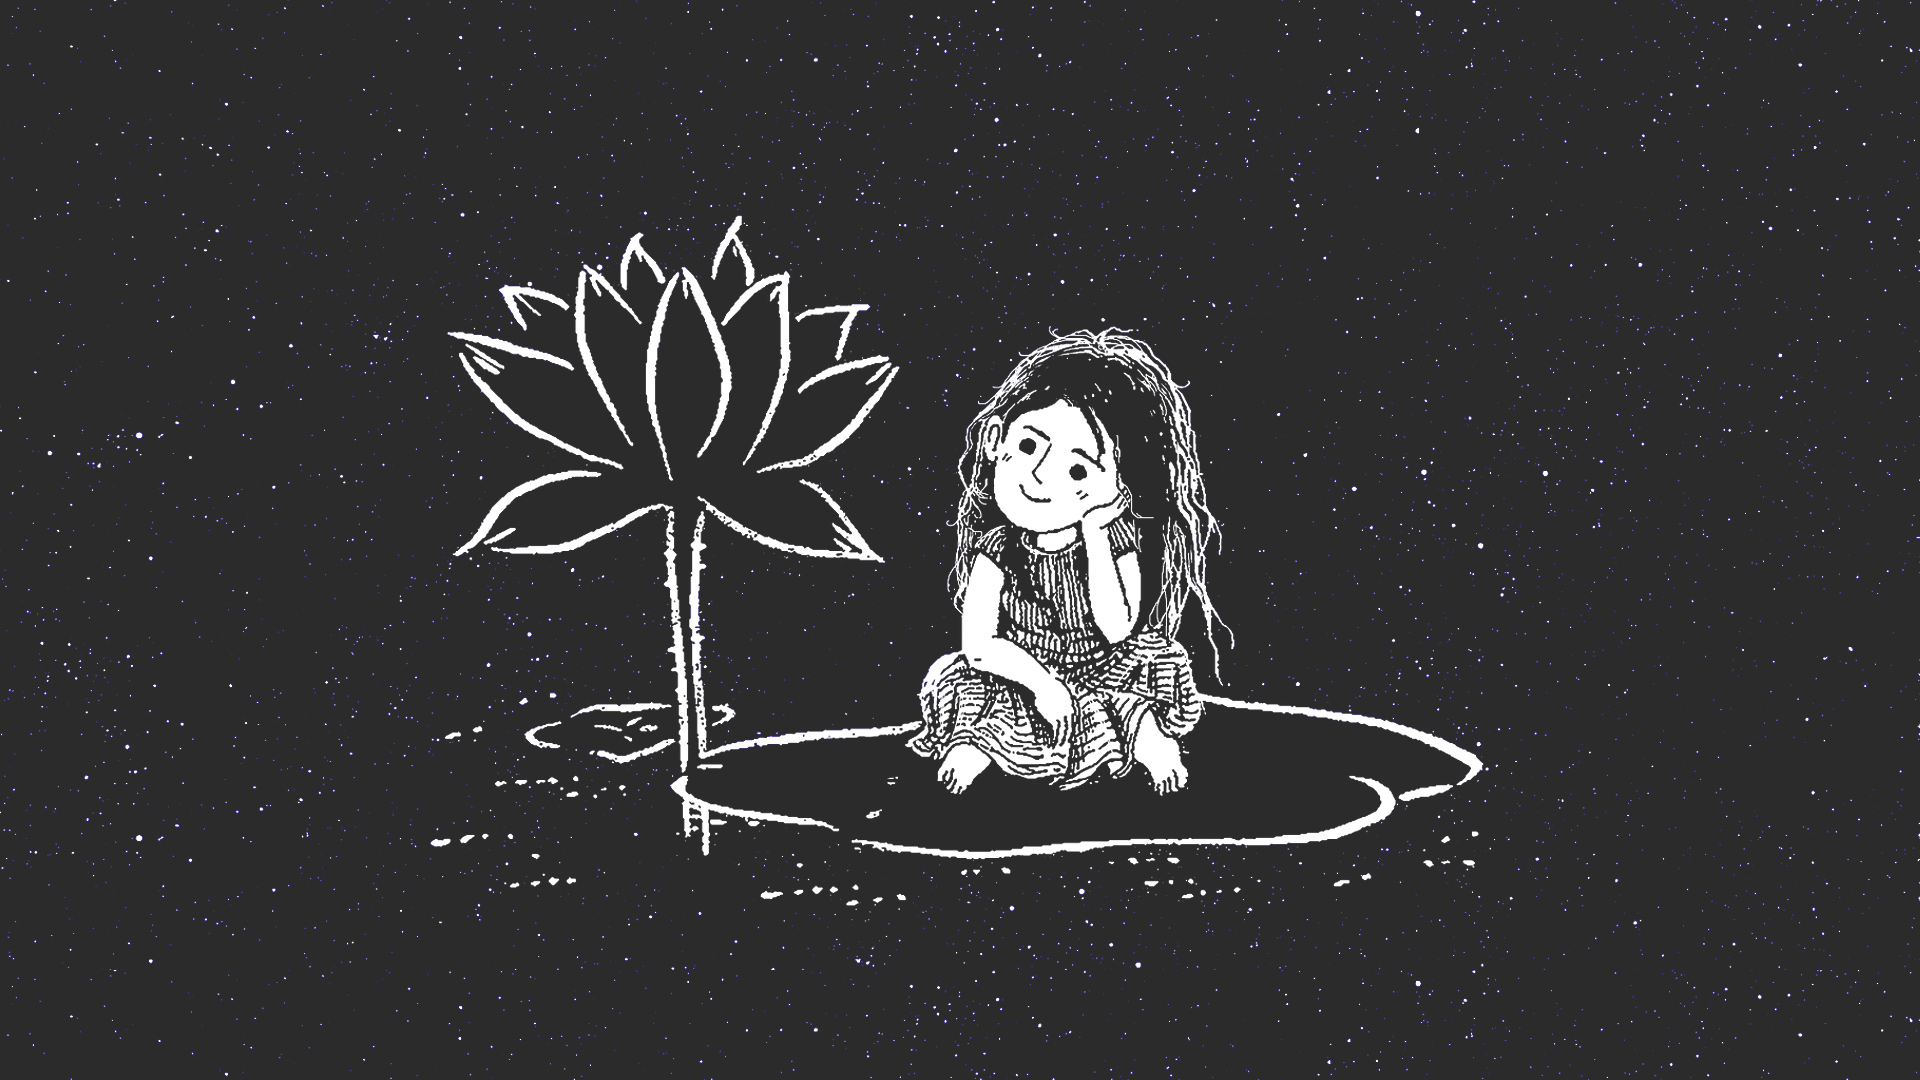 Illustrated girl sitting and looking at a flower